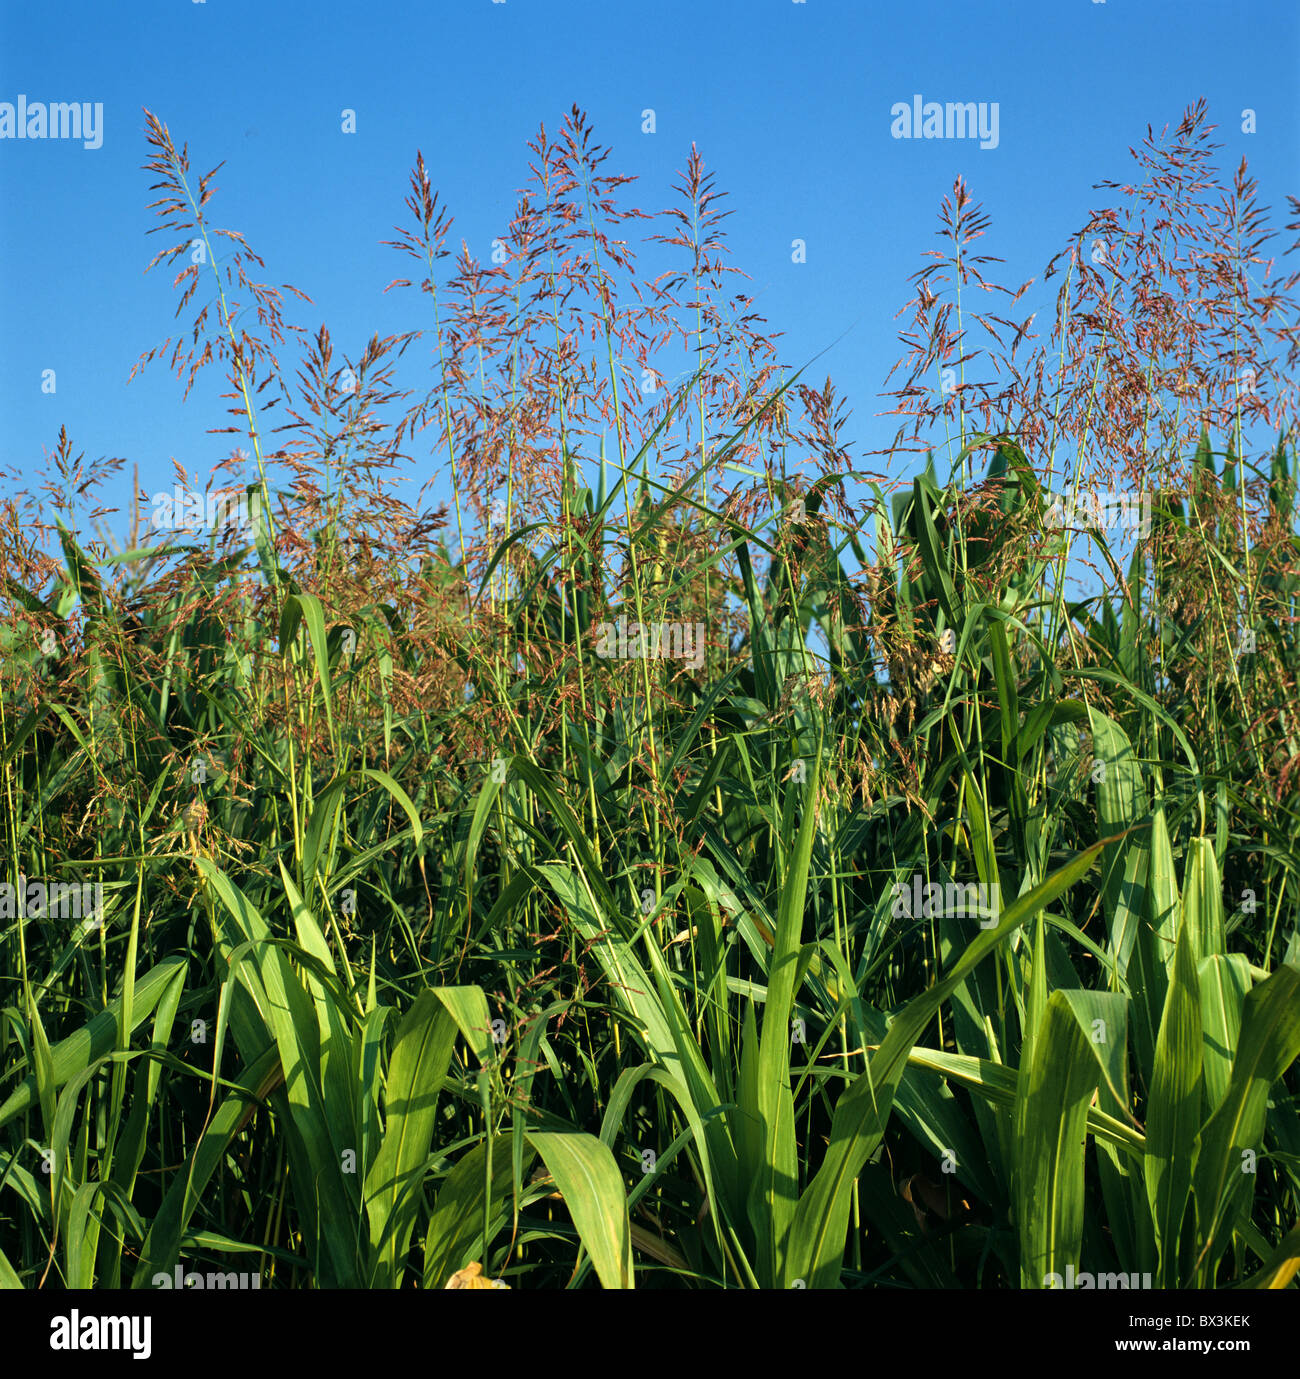 Johnson grass (Sorghum halepense) flowering in a mature maize crop, Italy - Stock Image